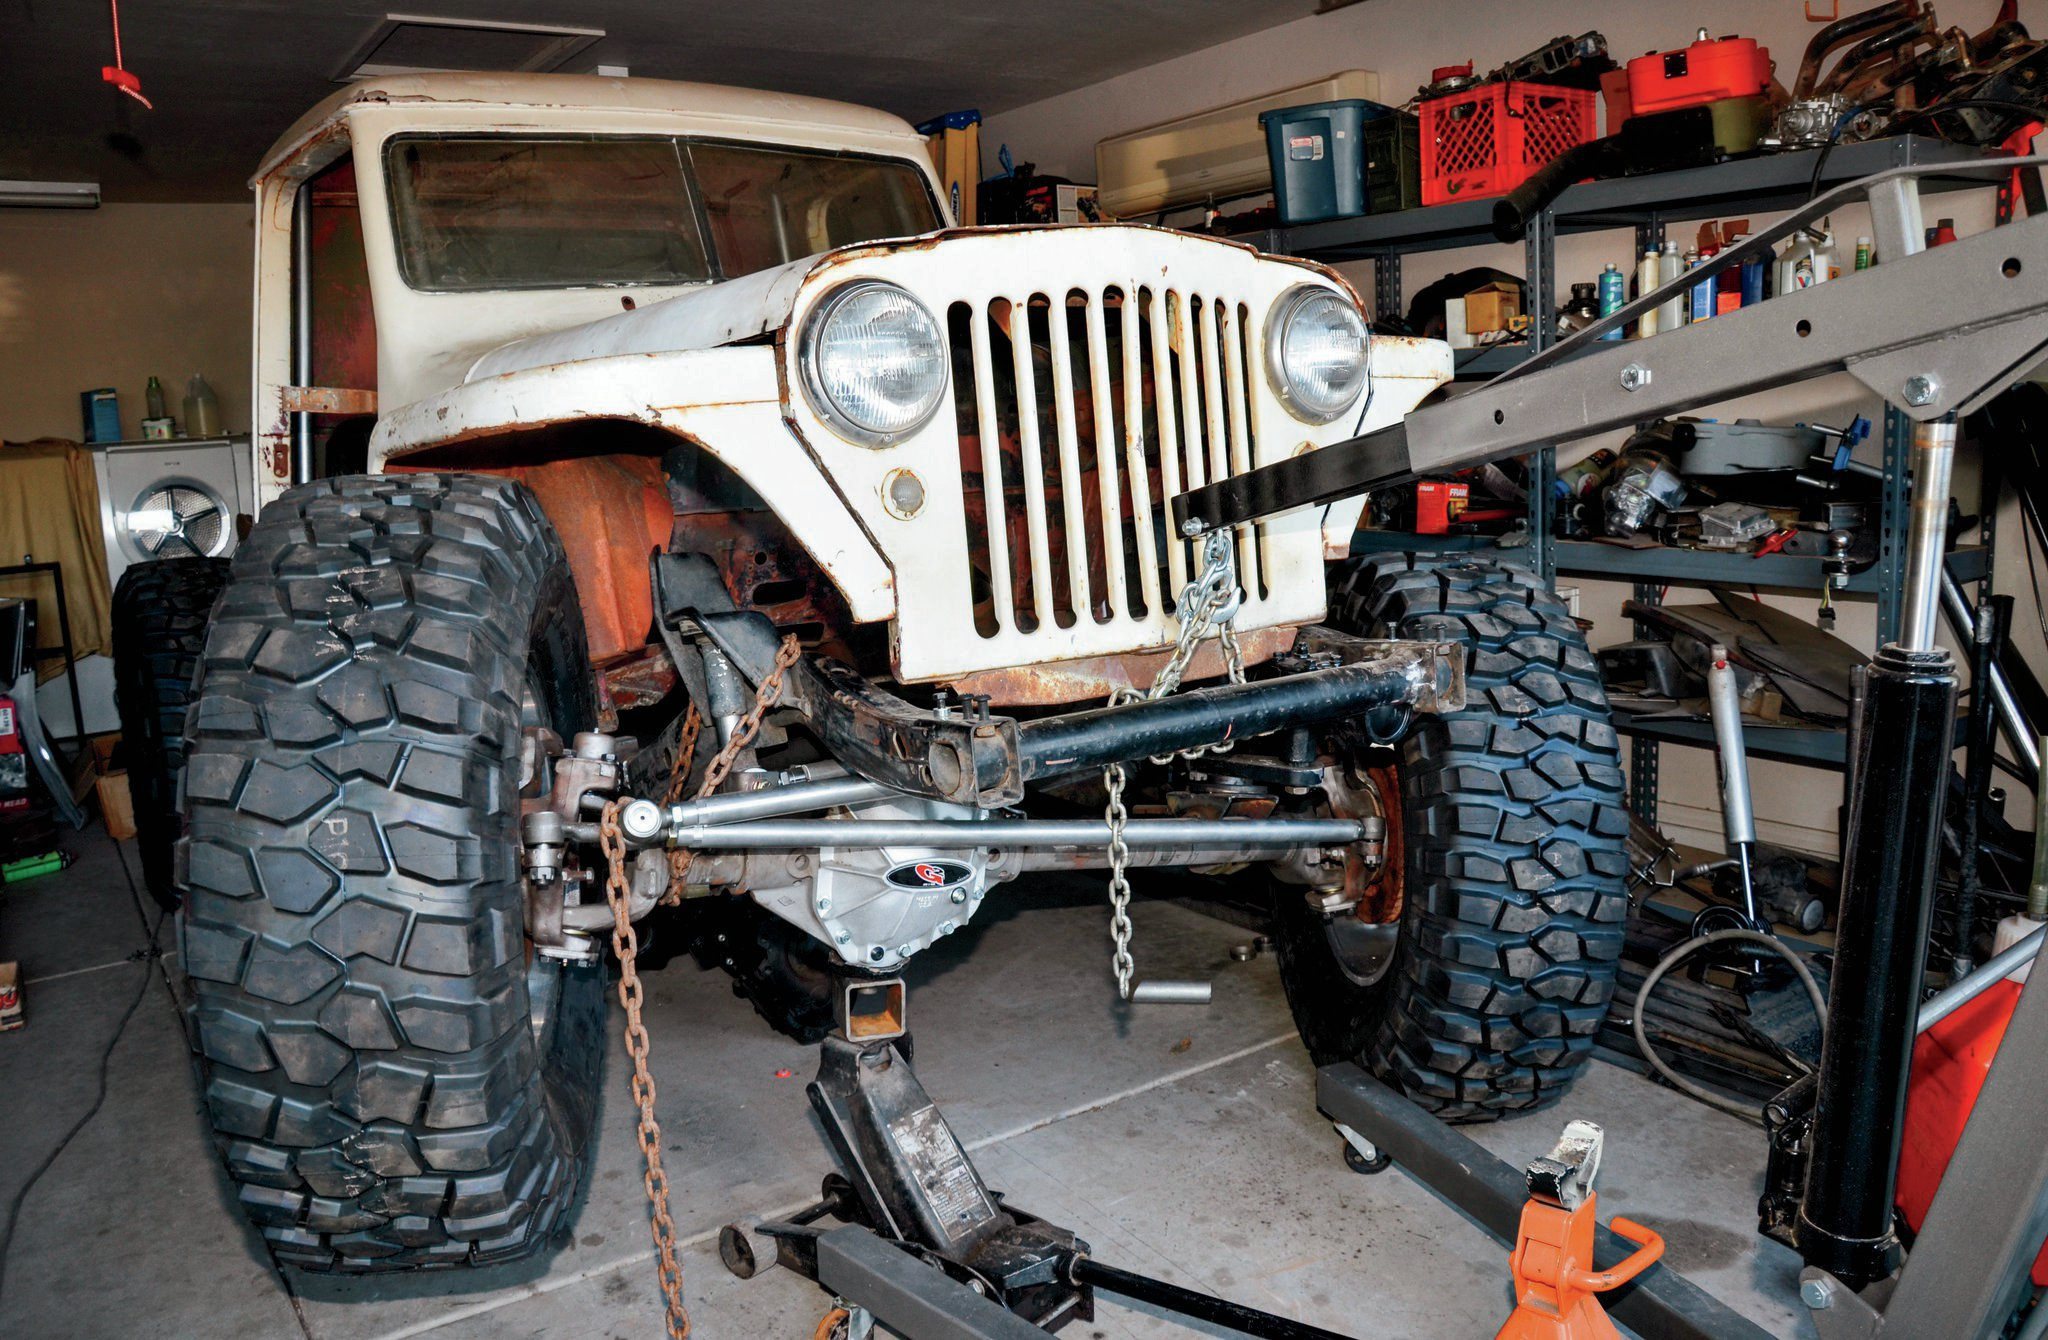 Cycling the suspension also allows us to measure for shocks and make sure that the springs that we wanted to use will work. Our plan is to use a mixture of Old Man Emu springs and shocks that should work with our TJ-style shock and spring mounts front and rear. Yeah, this thing is not going to max out any RTI-ramps, but a low-slung, powerful Jeep on large tires is a proven formula that we like.